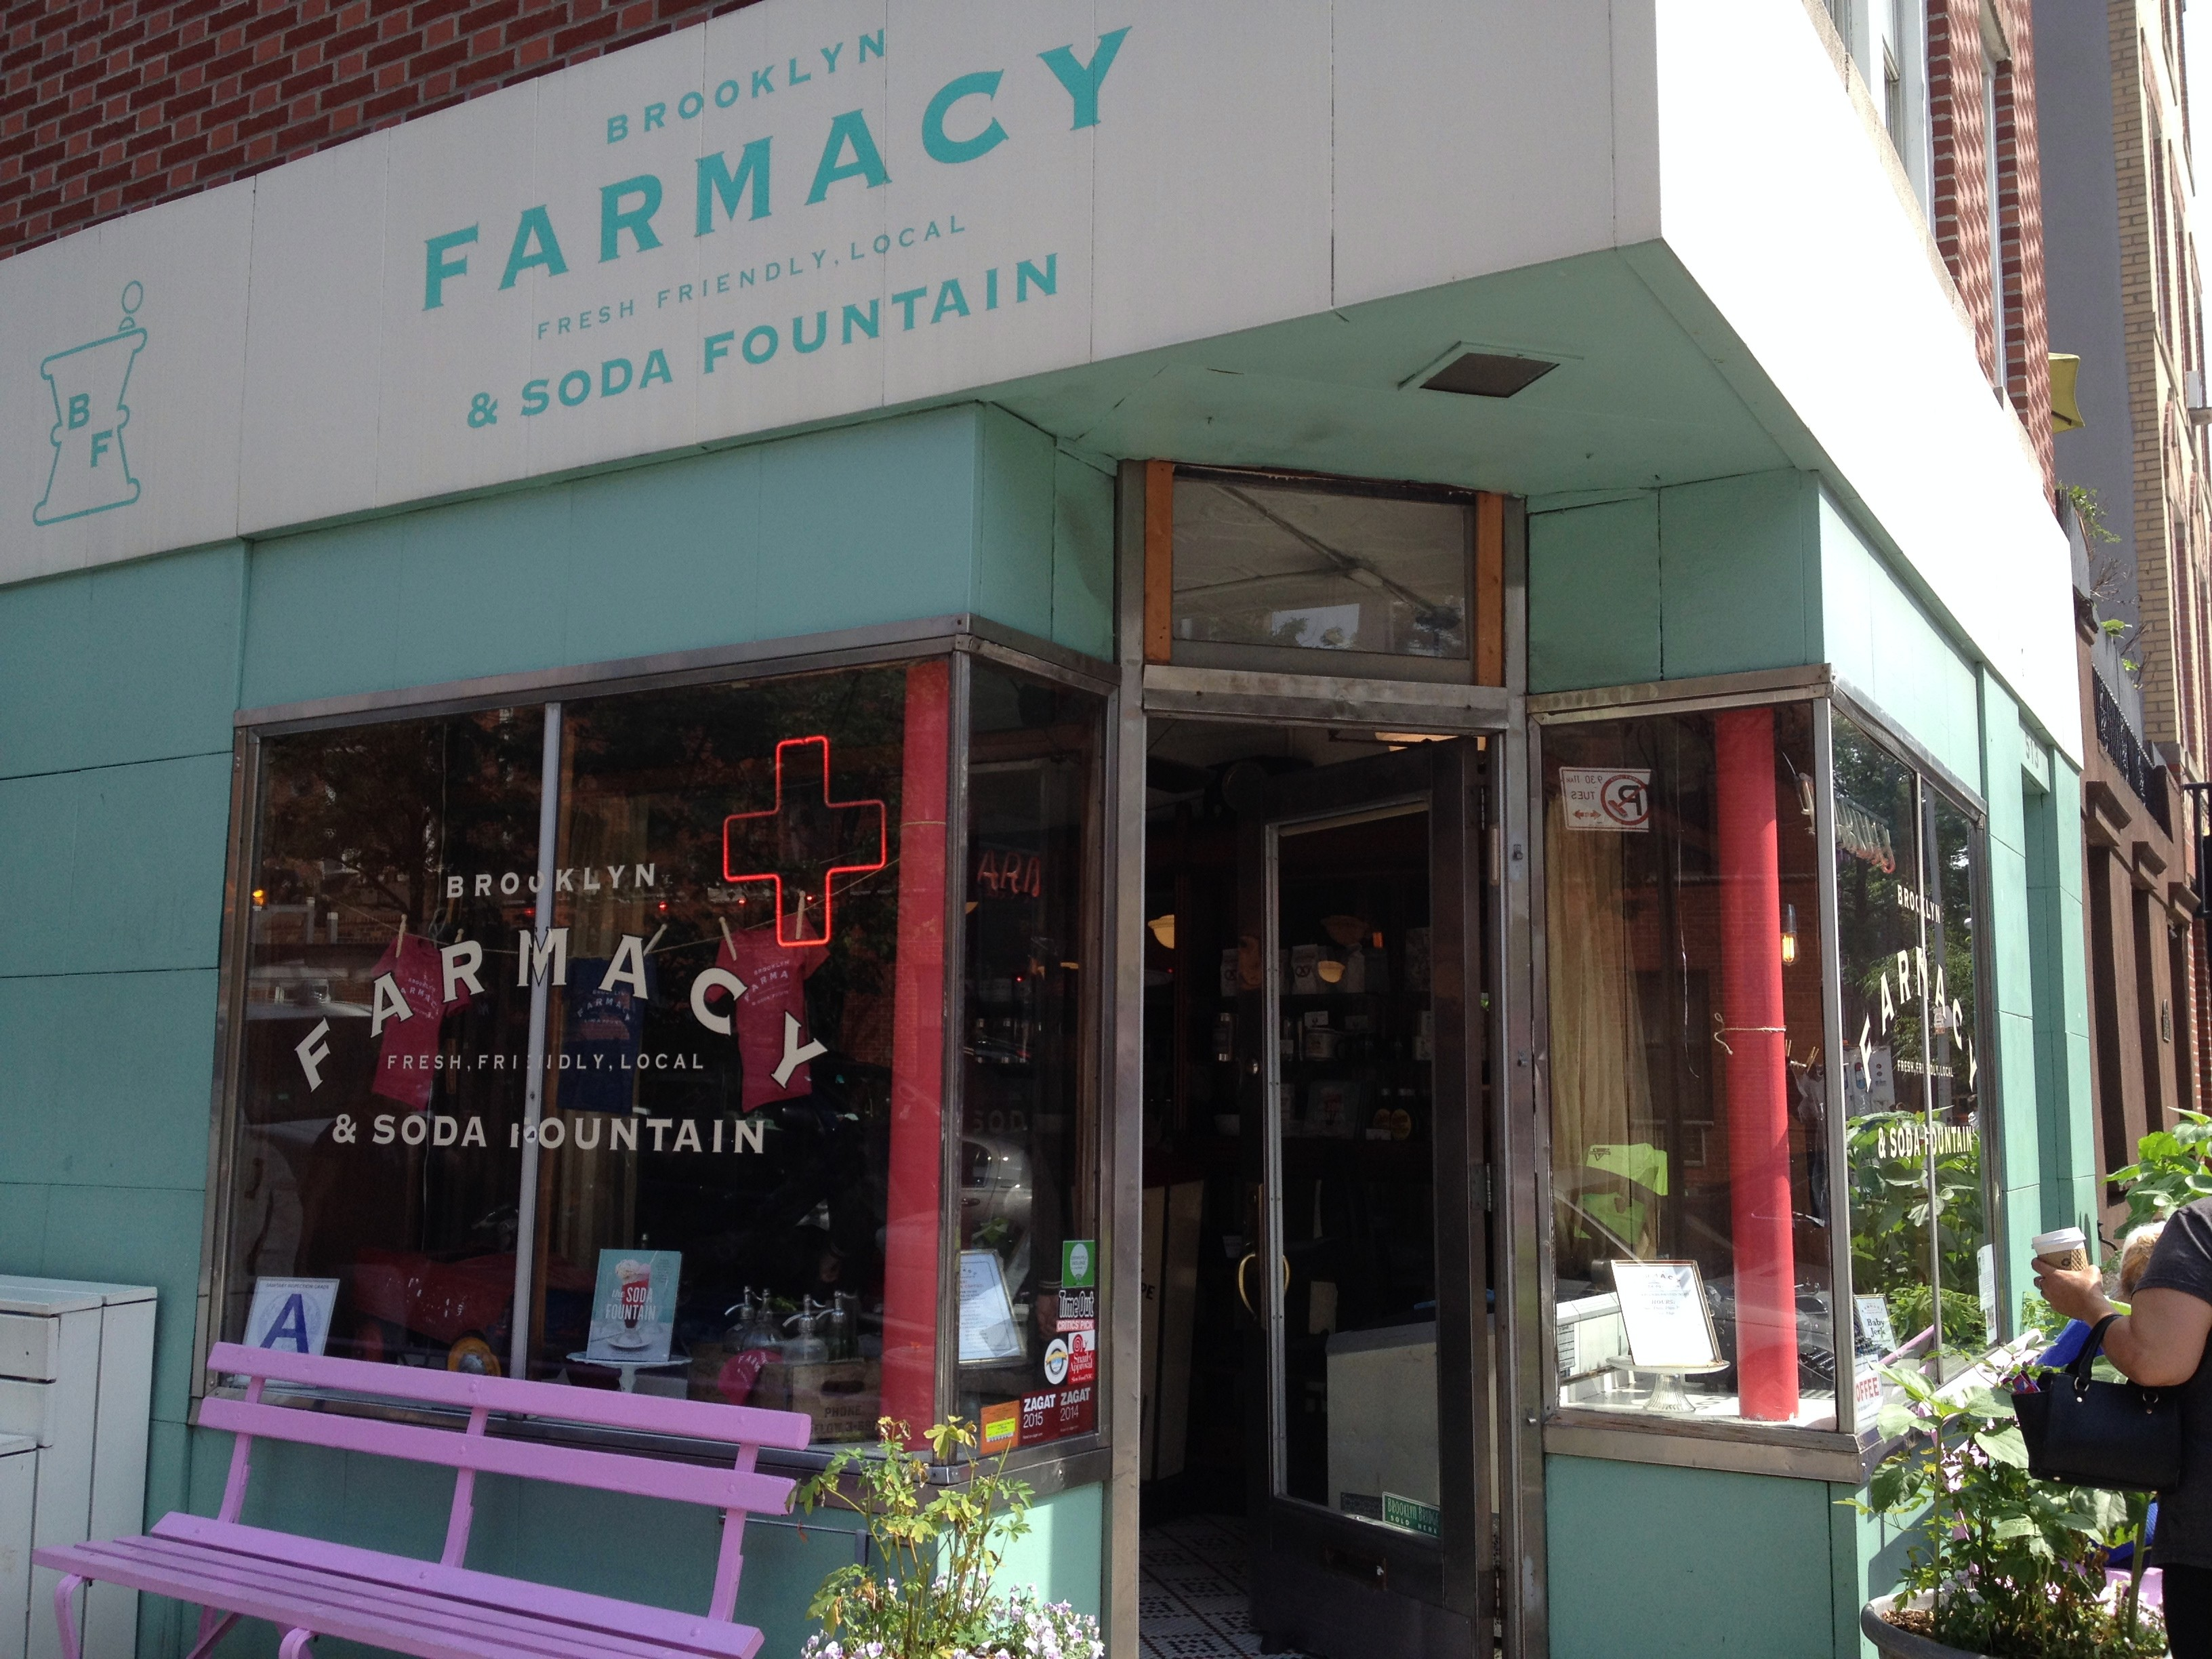 Step back in time to the Brooklyn Farmacy!